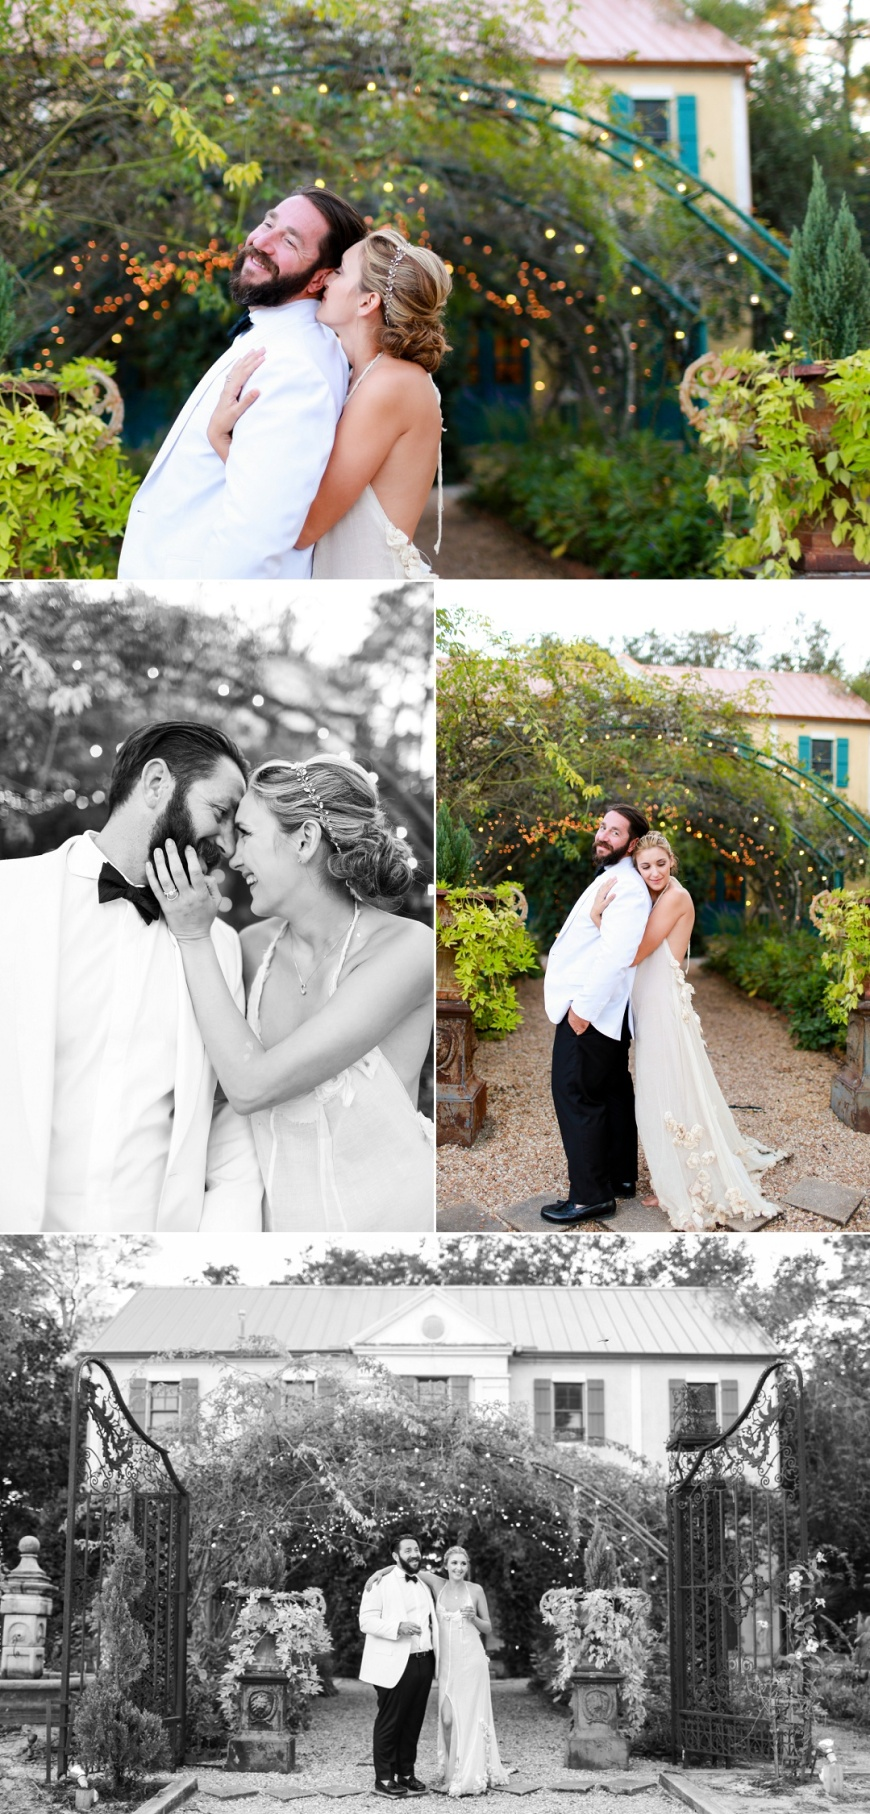 30A-Grayton-Beach-Wedding-Photographer_1070.jpg